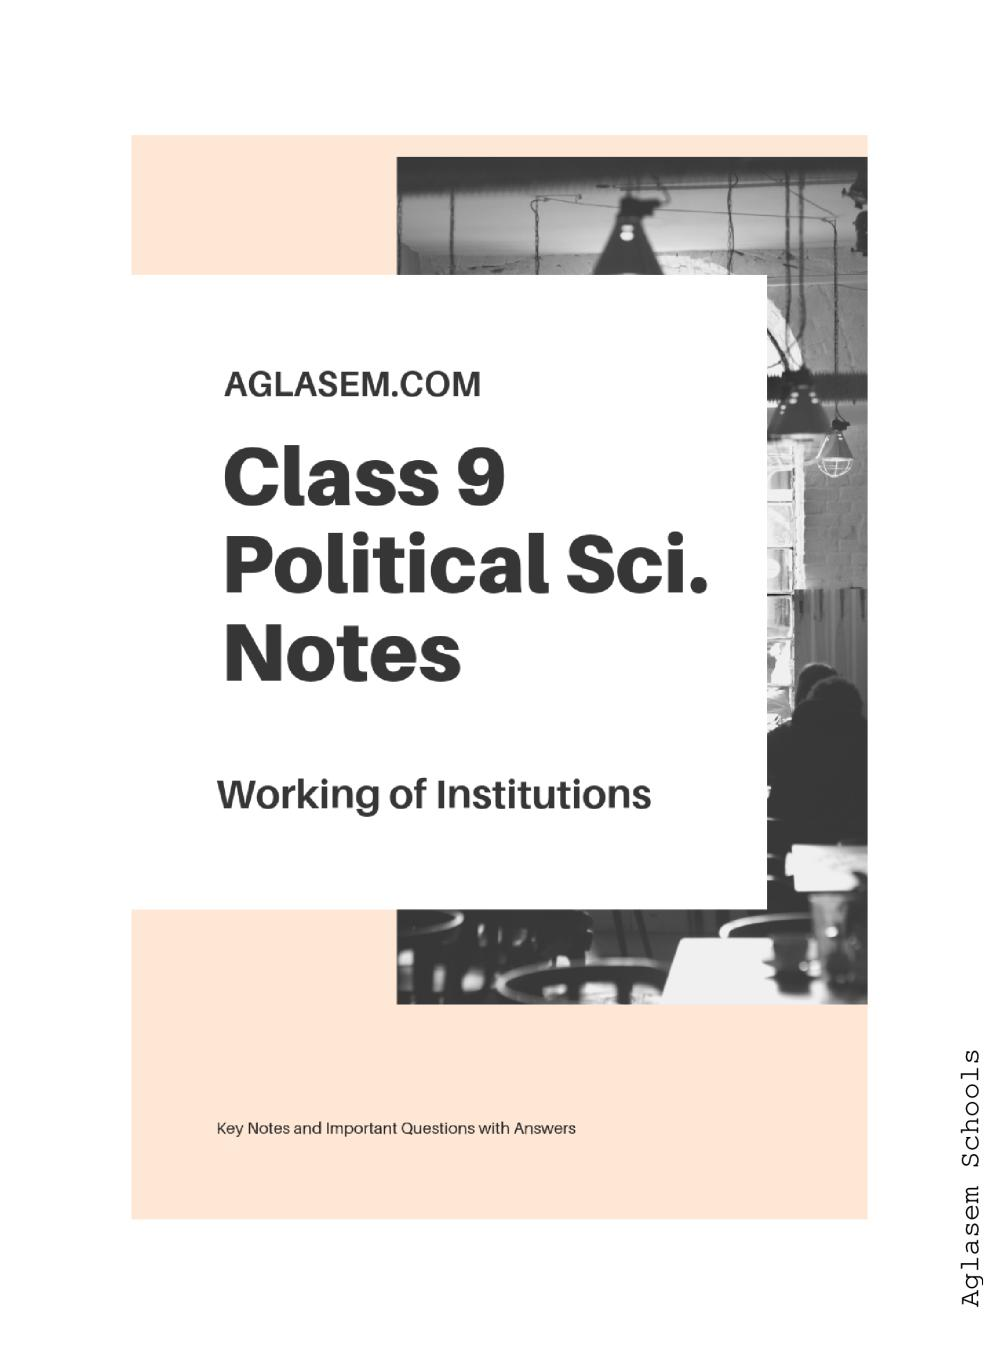 Class 9 Social Science (Political Science / Civics) Working of Institutions Notes, Important Questions & Practice Paper